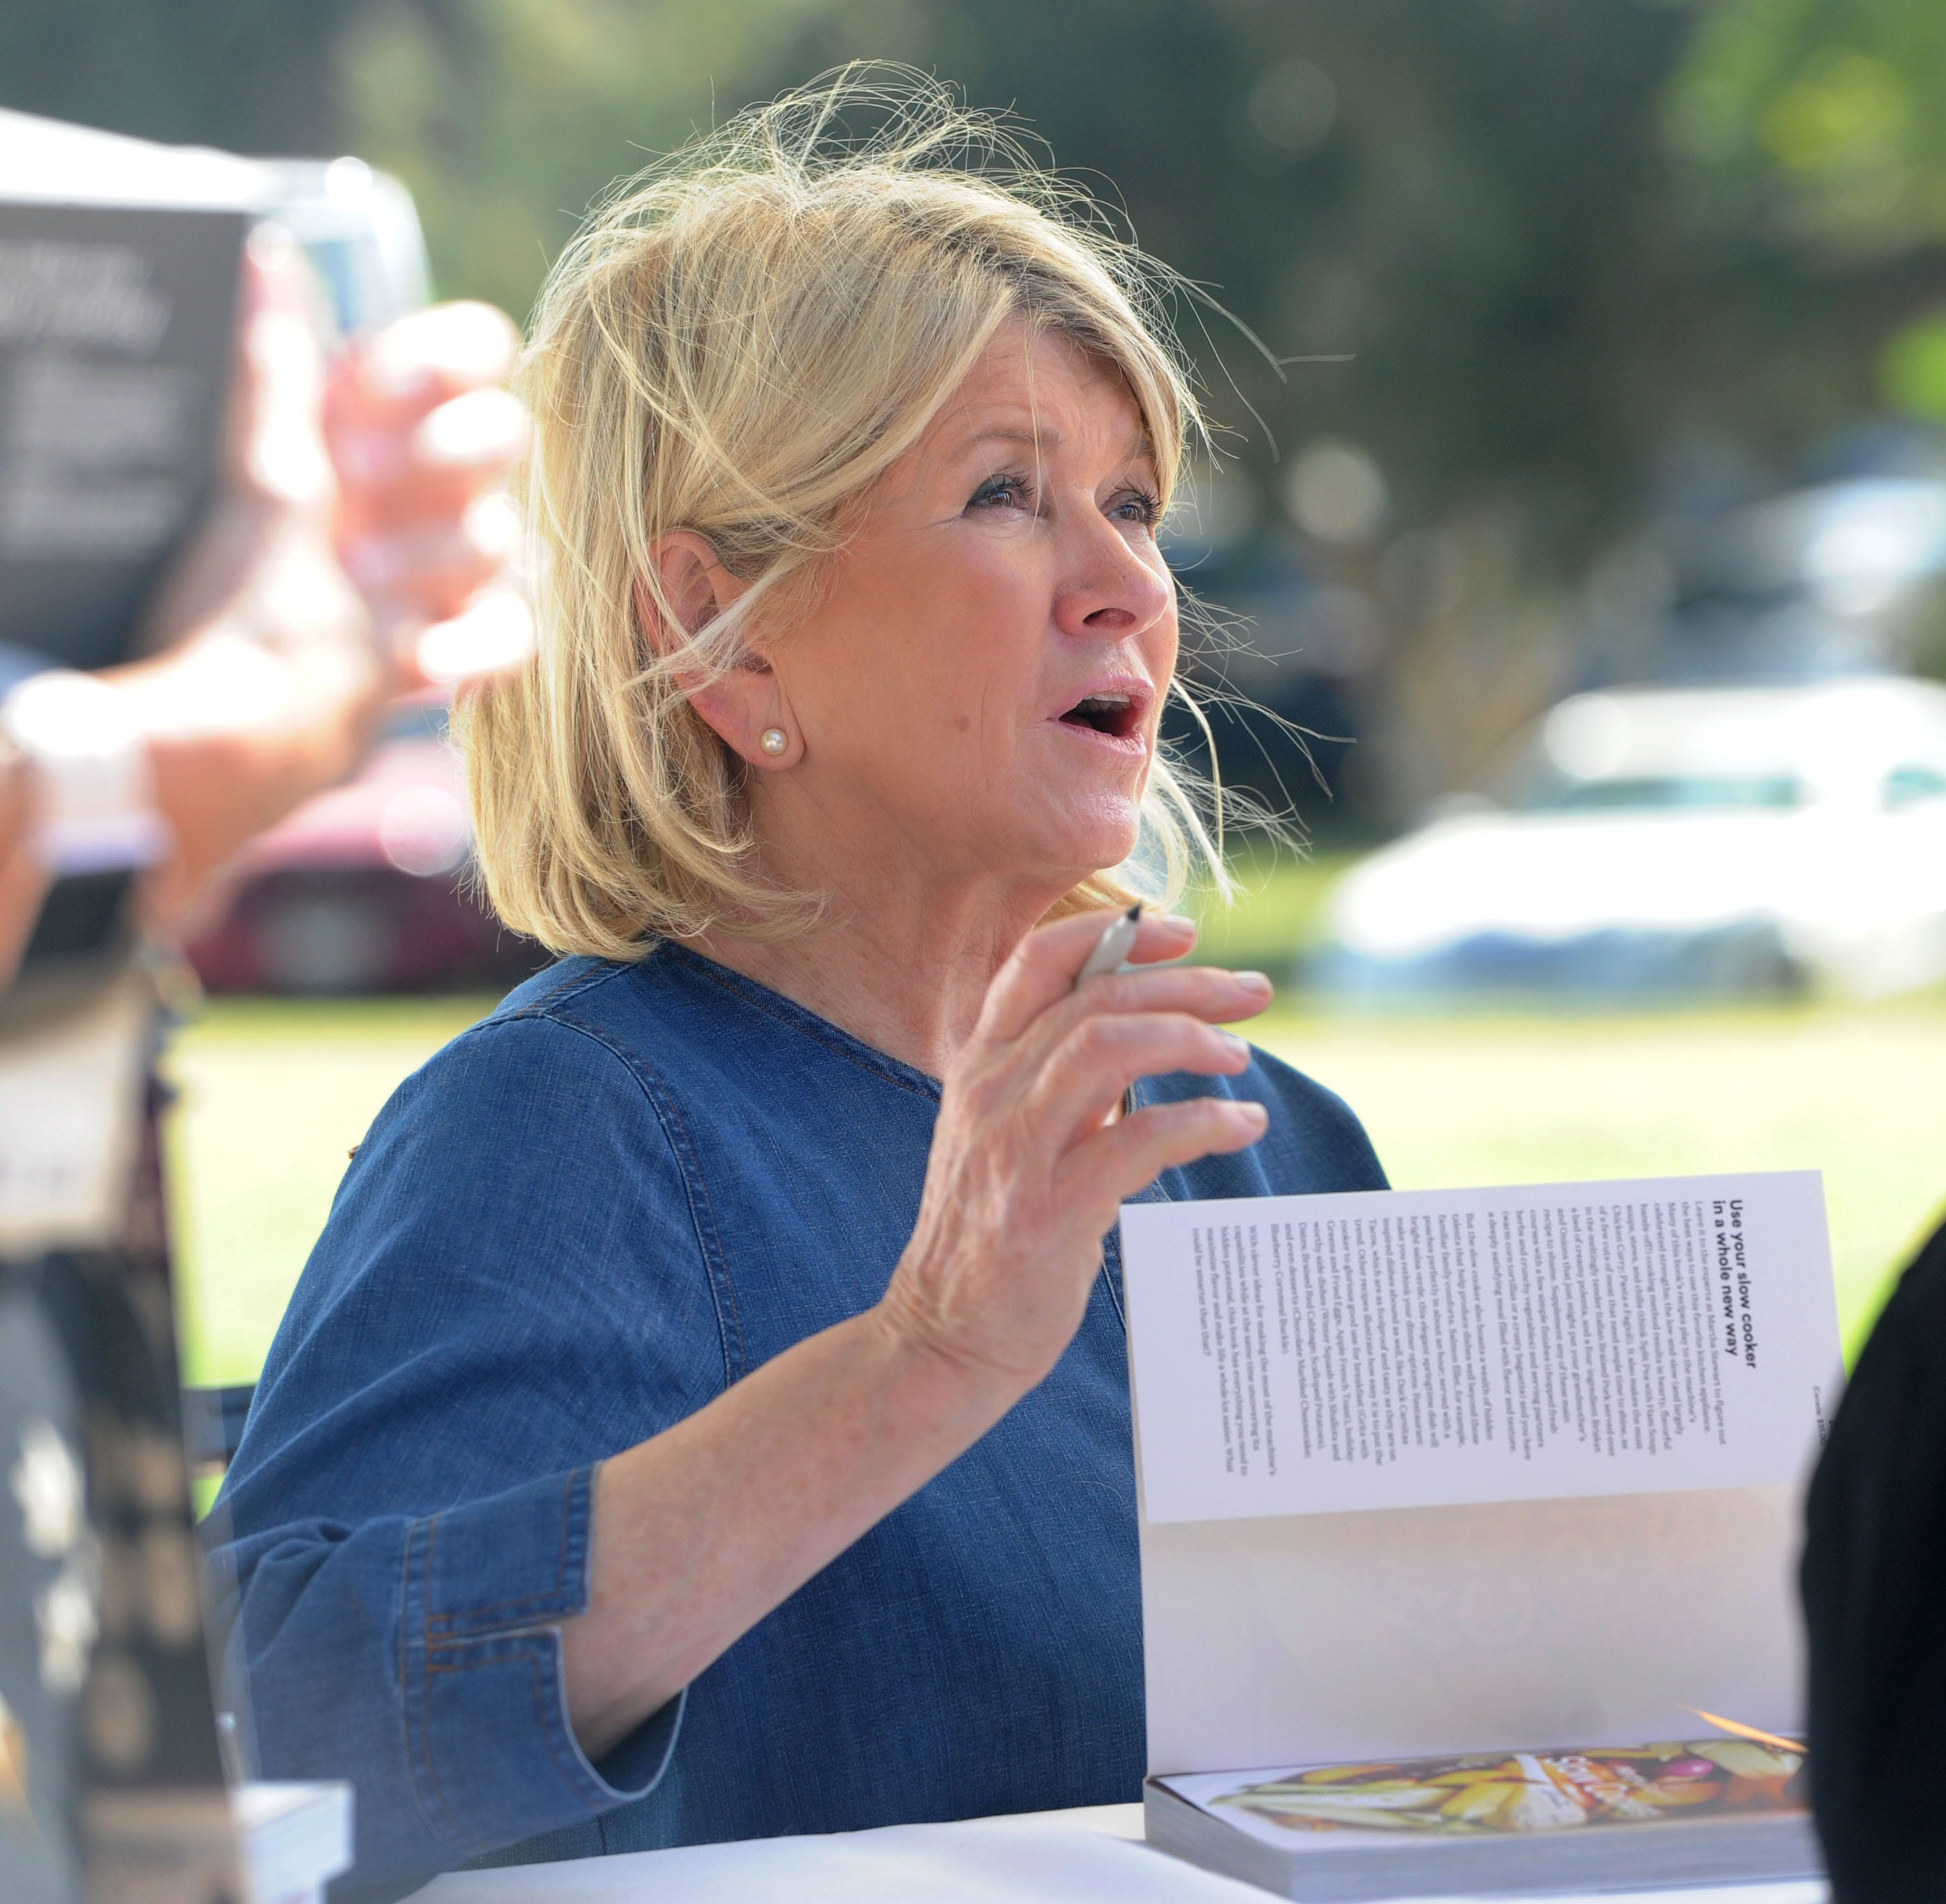 Coming up: Lohud Food Truck Mash-Up, Martha Stewart wine event and Tim McGraw in Greenwich